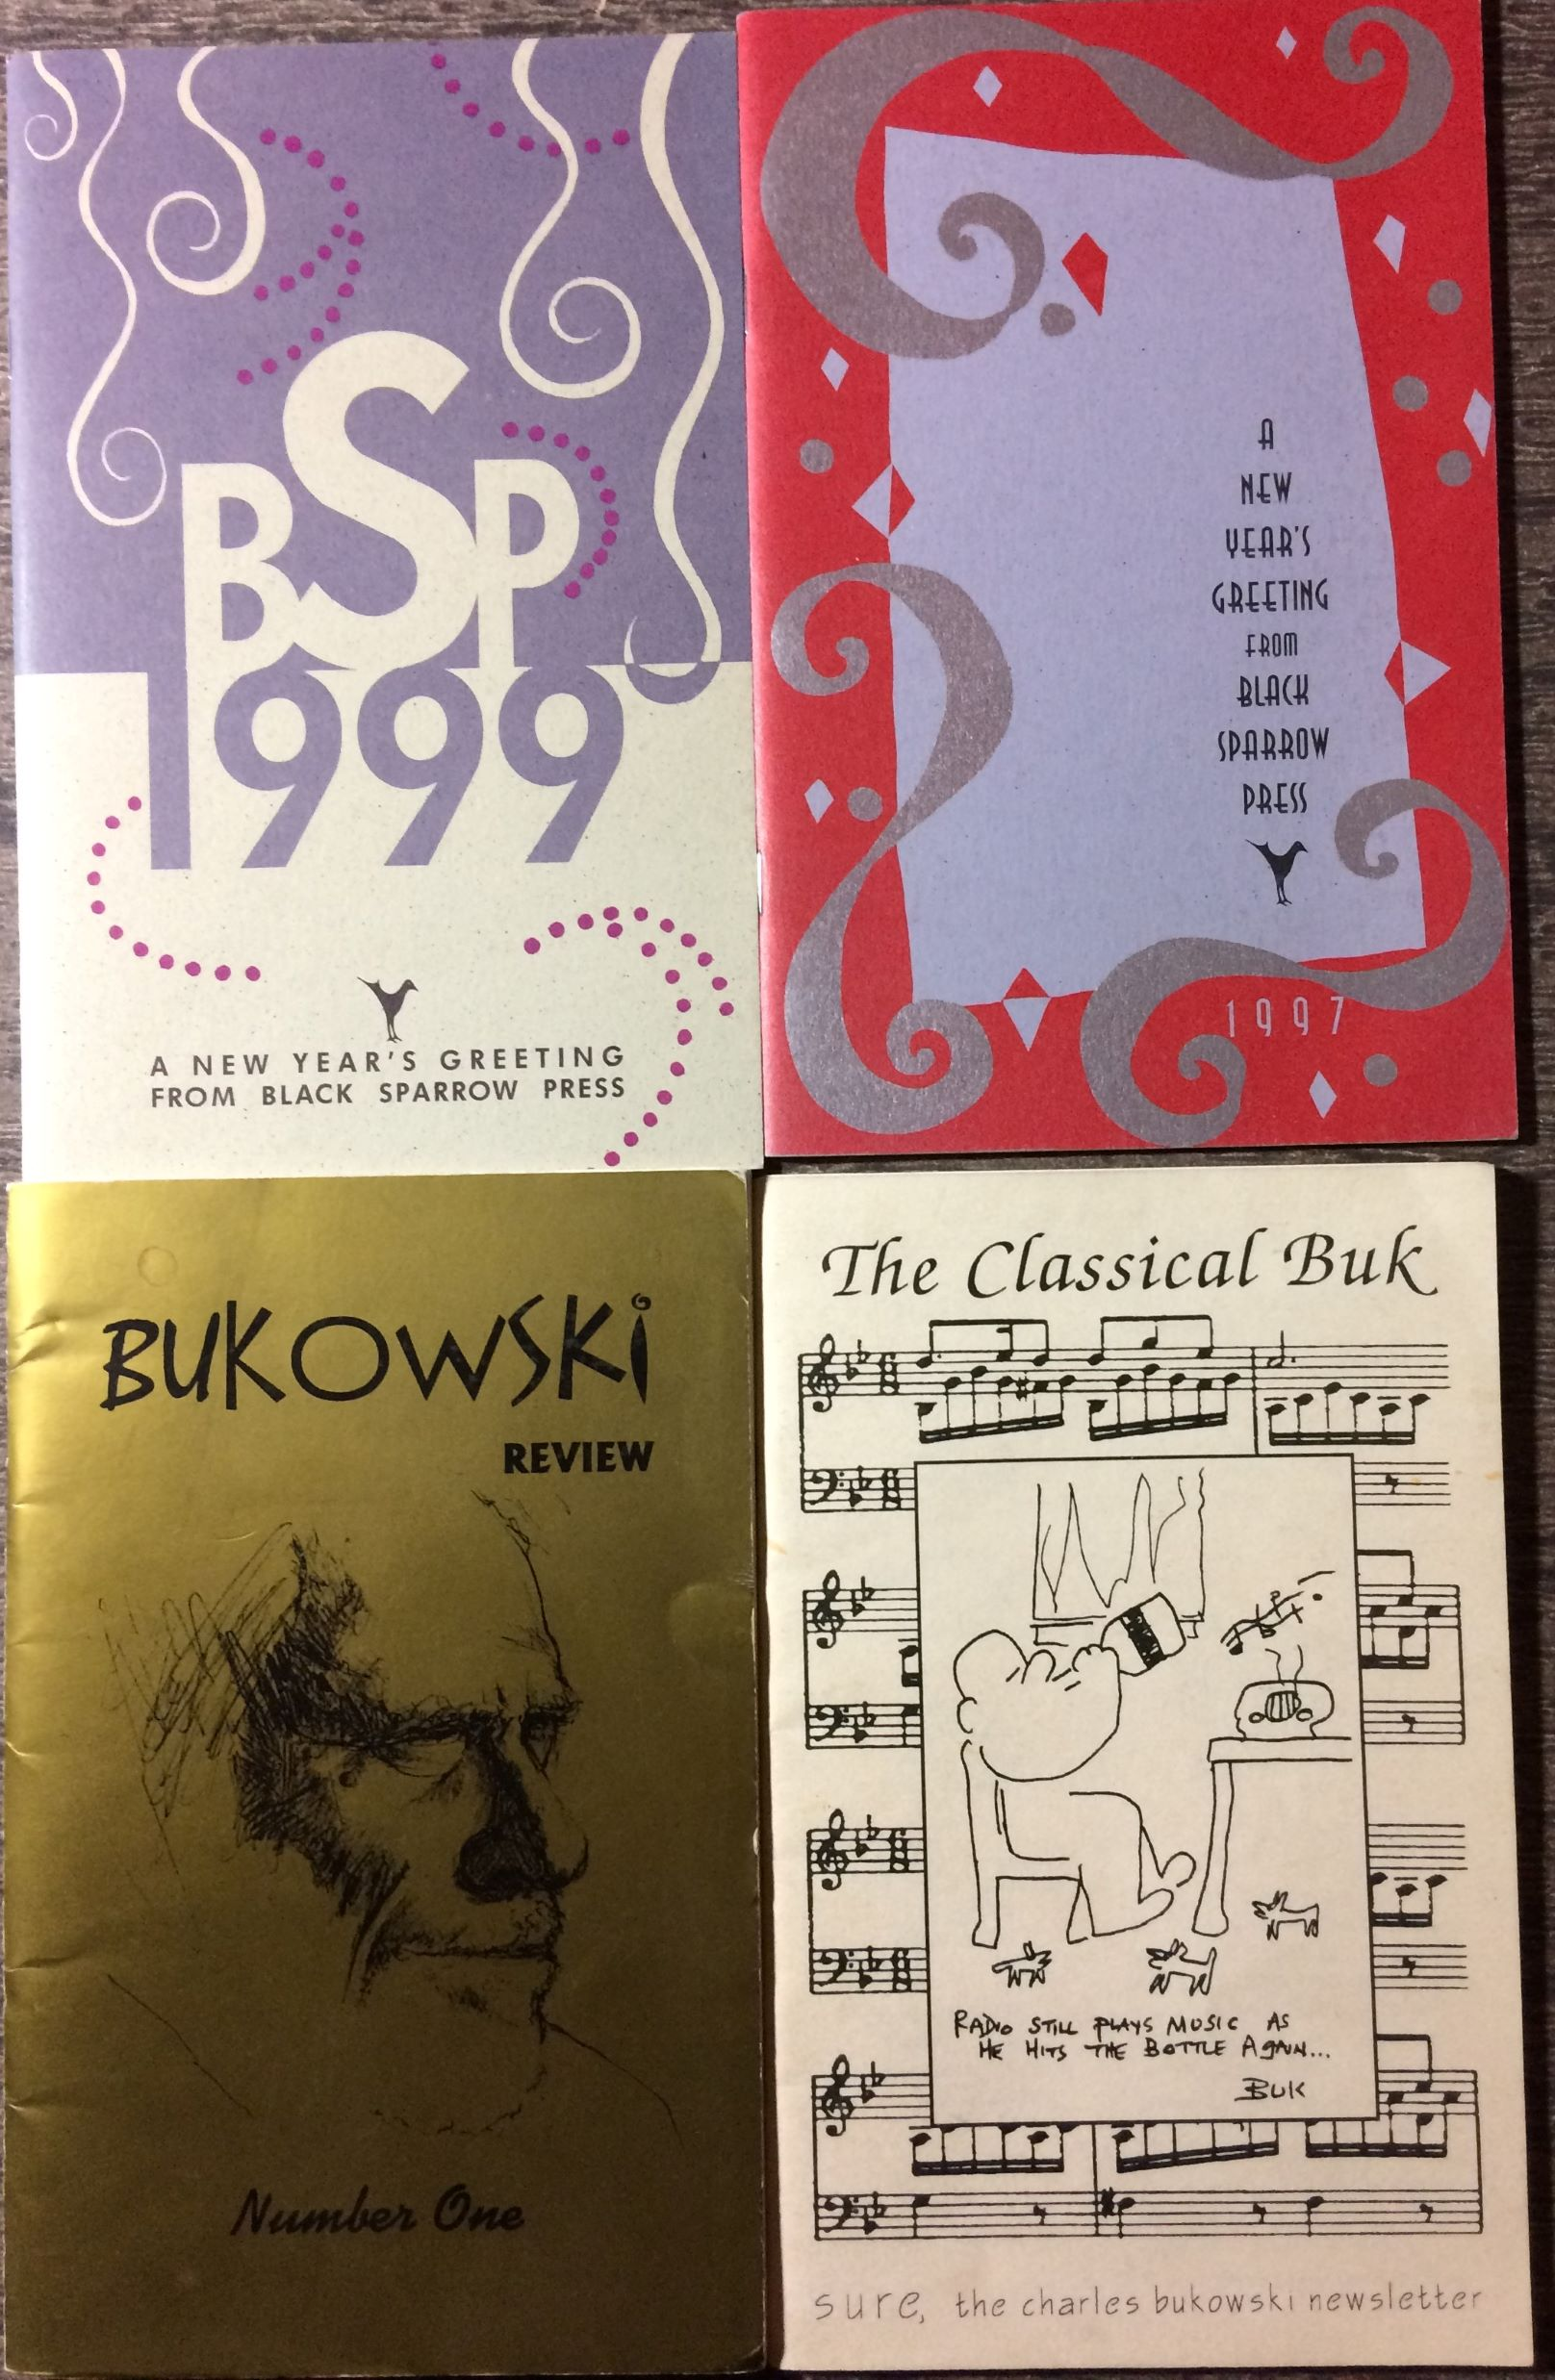 Image for [4 items]: Sure, the charles bukowski newsletter, No. 3; December 1991 [The Classical Buk, cover title]; Bukowski Review Number One, Winter 2001-2002; A New Year's Greeting from Black Sparrow Press, 1997 & 1999.